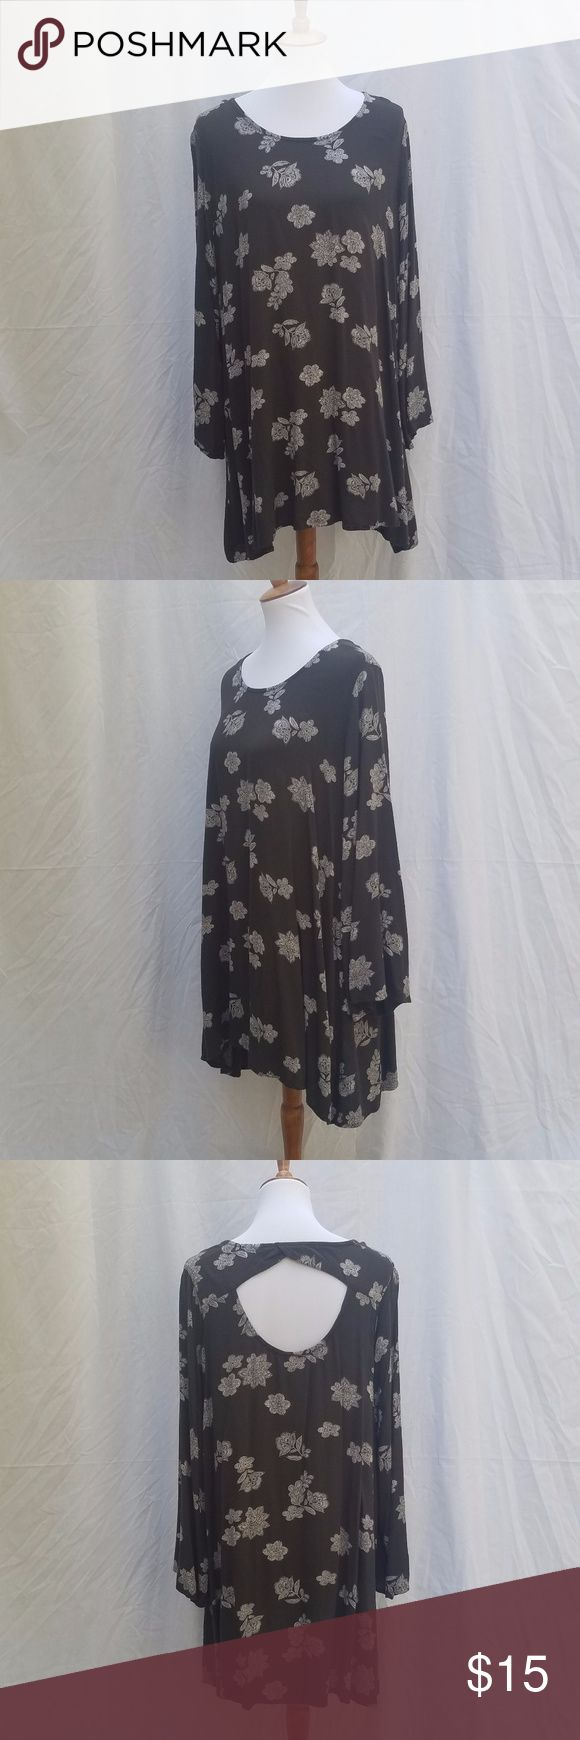 Mossimo Supply Co. floral print bell sleeve dress Mossimo Supply Co. floral print bell sleeve dress, dark gray flowy dress with white floral print with back cut-out.  Size XL.  122-D Mossimo Supply Co. Dresses Long Sleeve